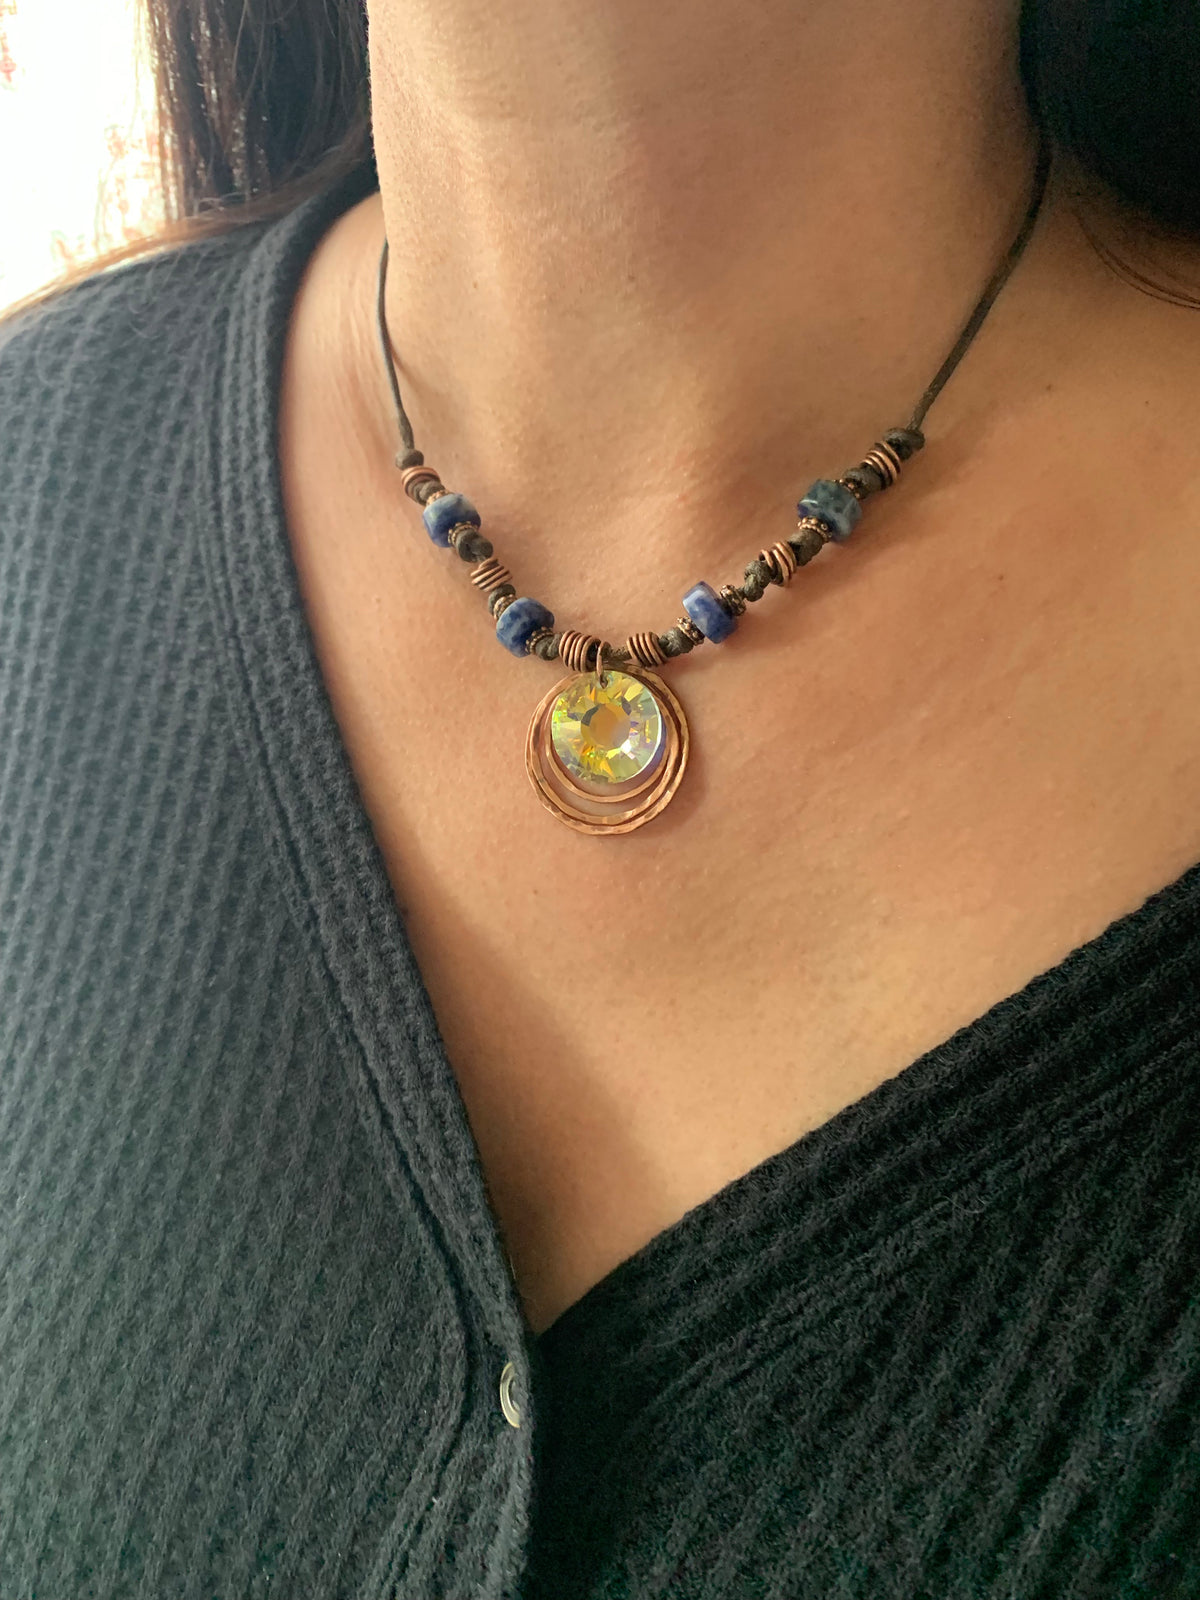 Sunlight Sodalite Crystal Necklace | Intuition & Truth - Emz Blendz